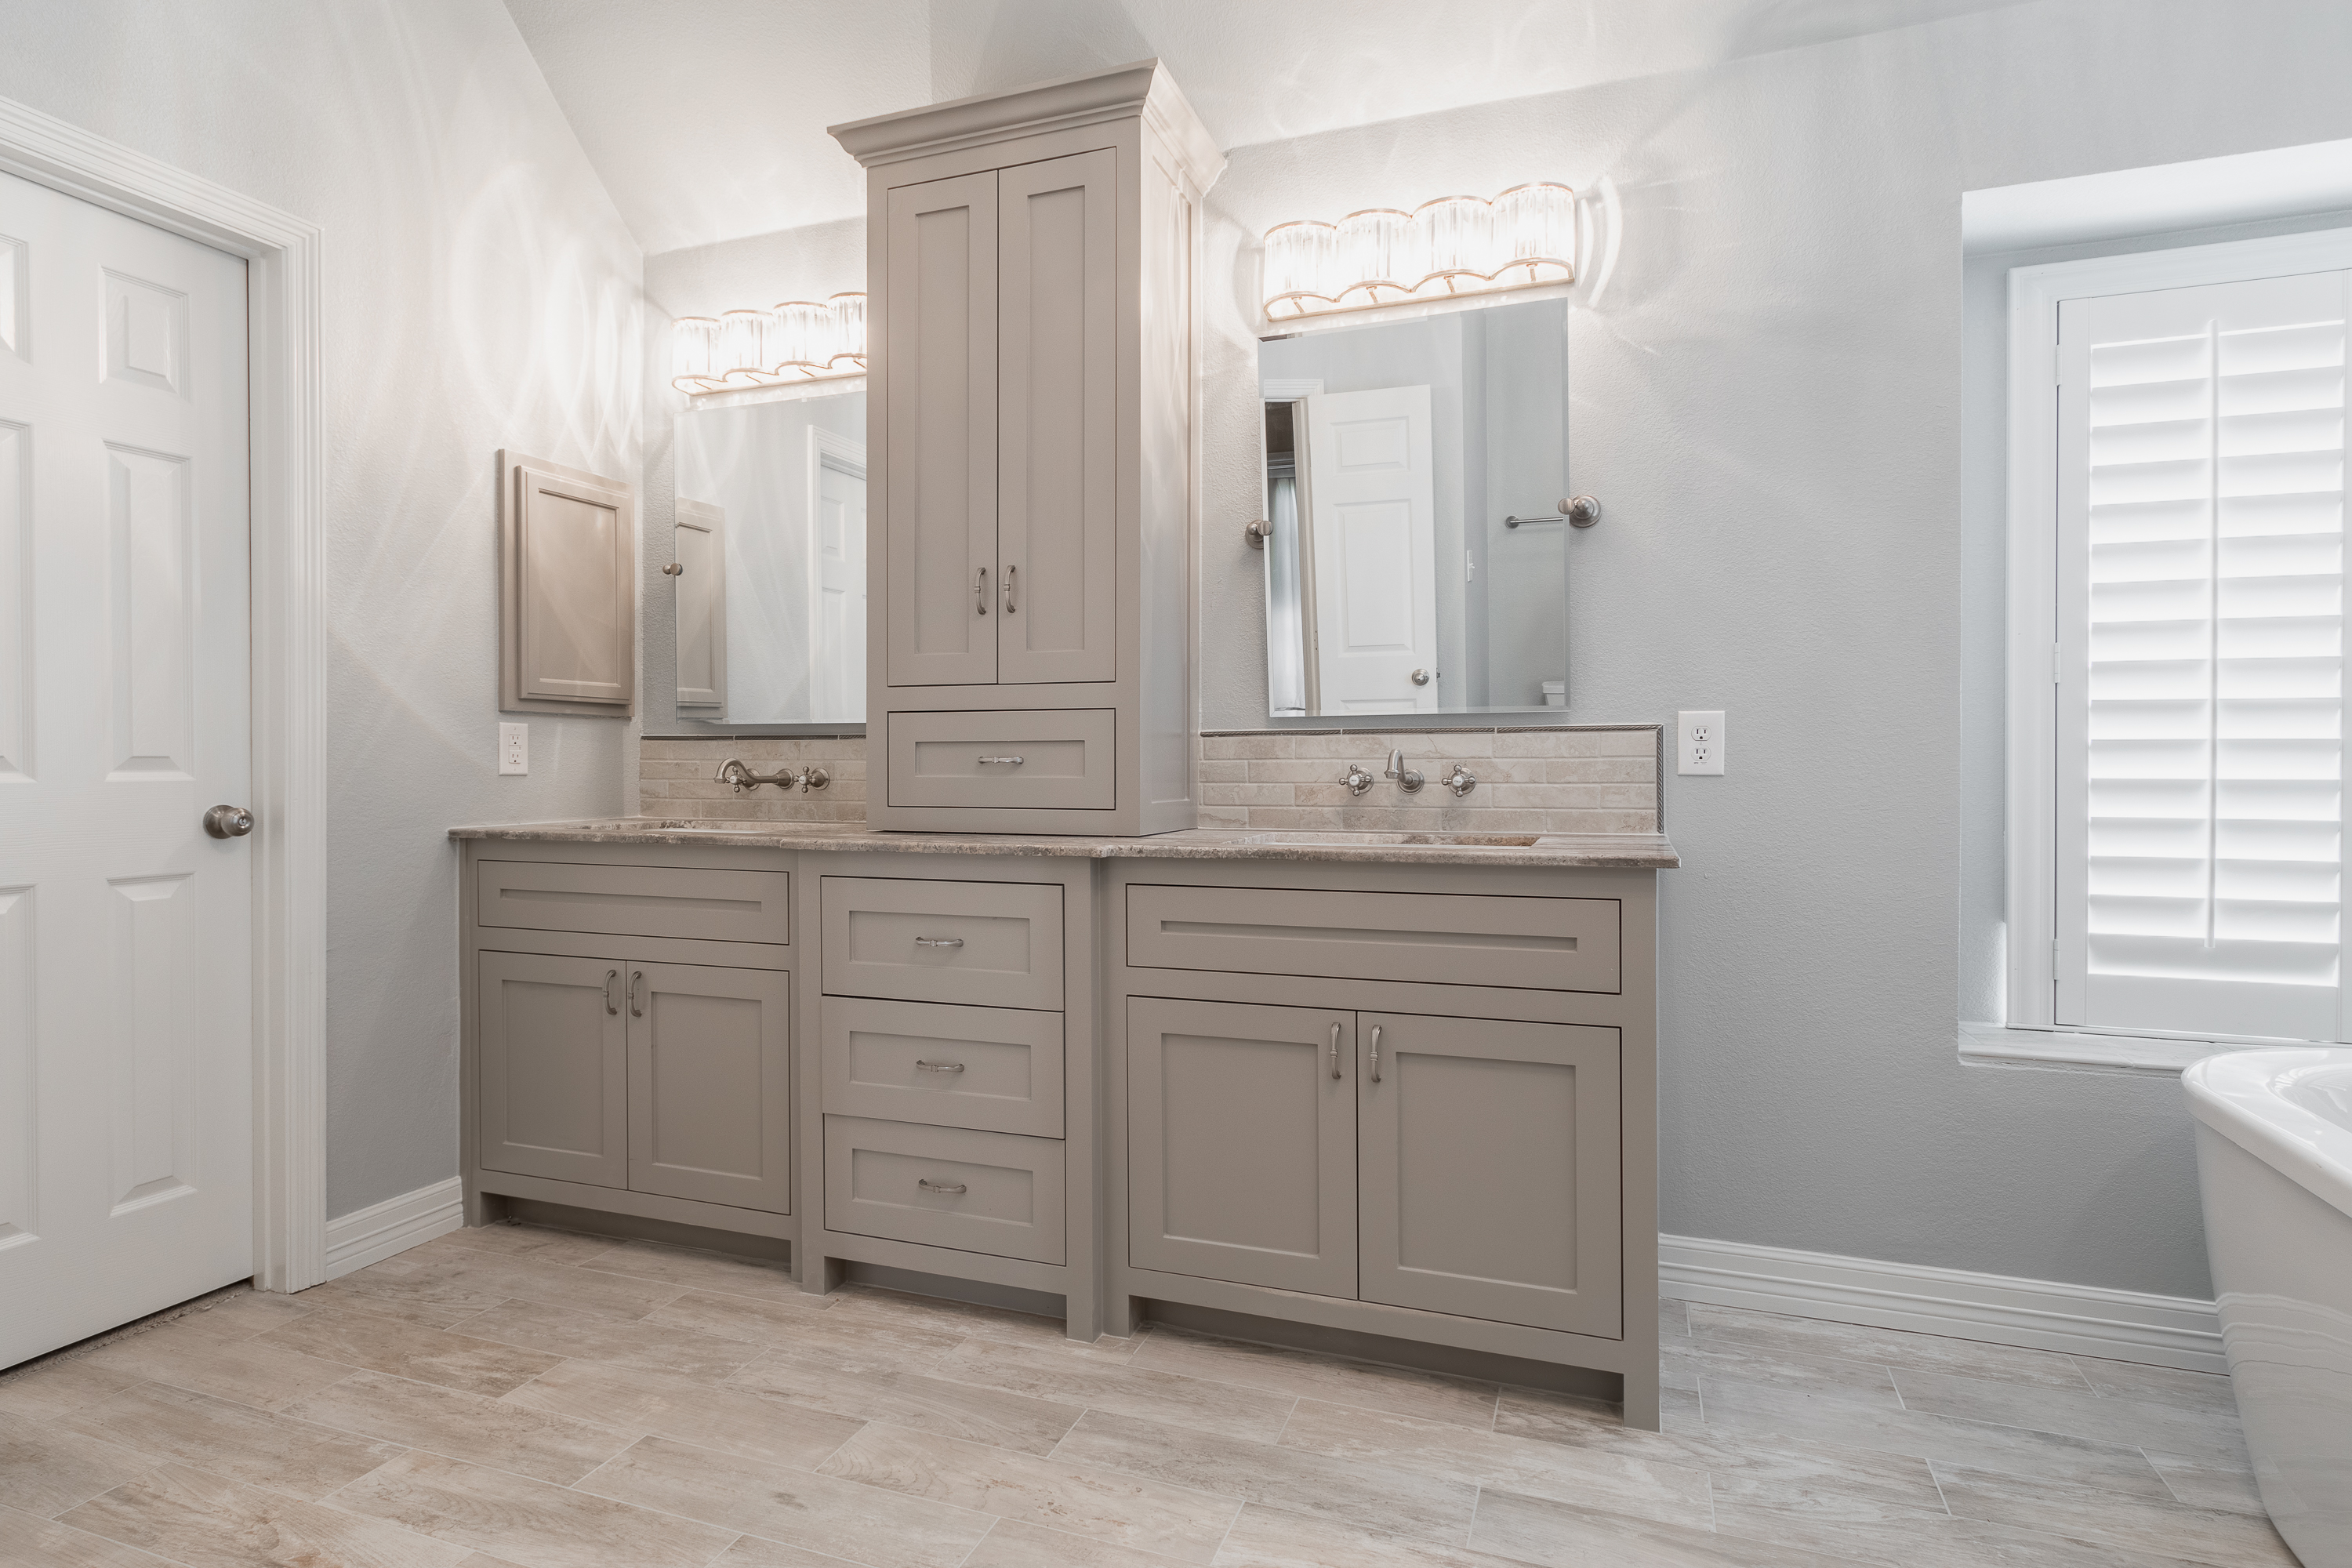 signature_custom_home_painting_master_bath_remodel_mckinney_tx_after2